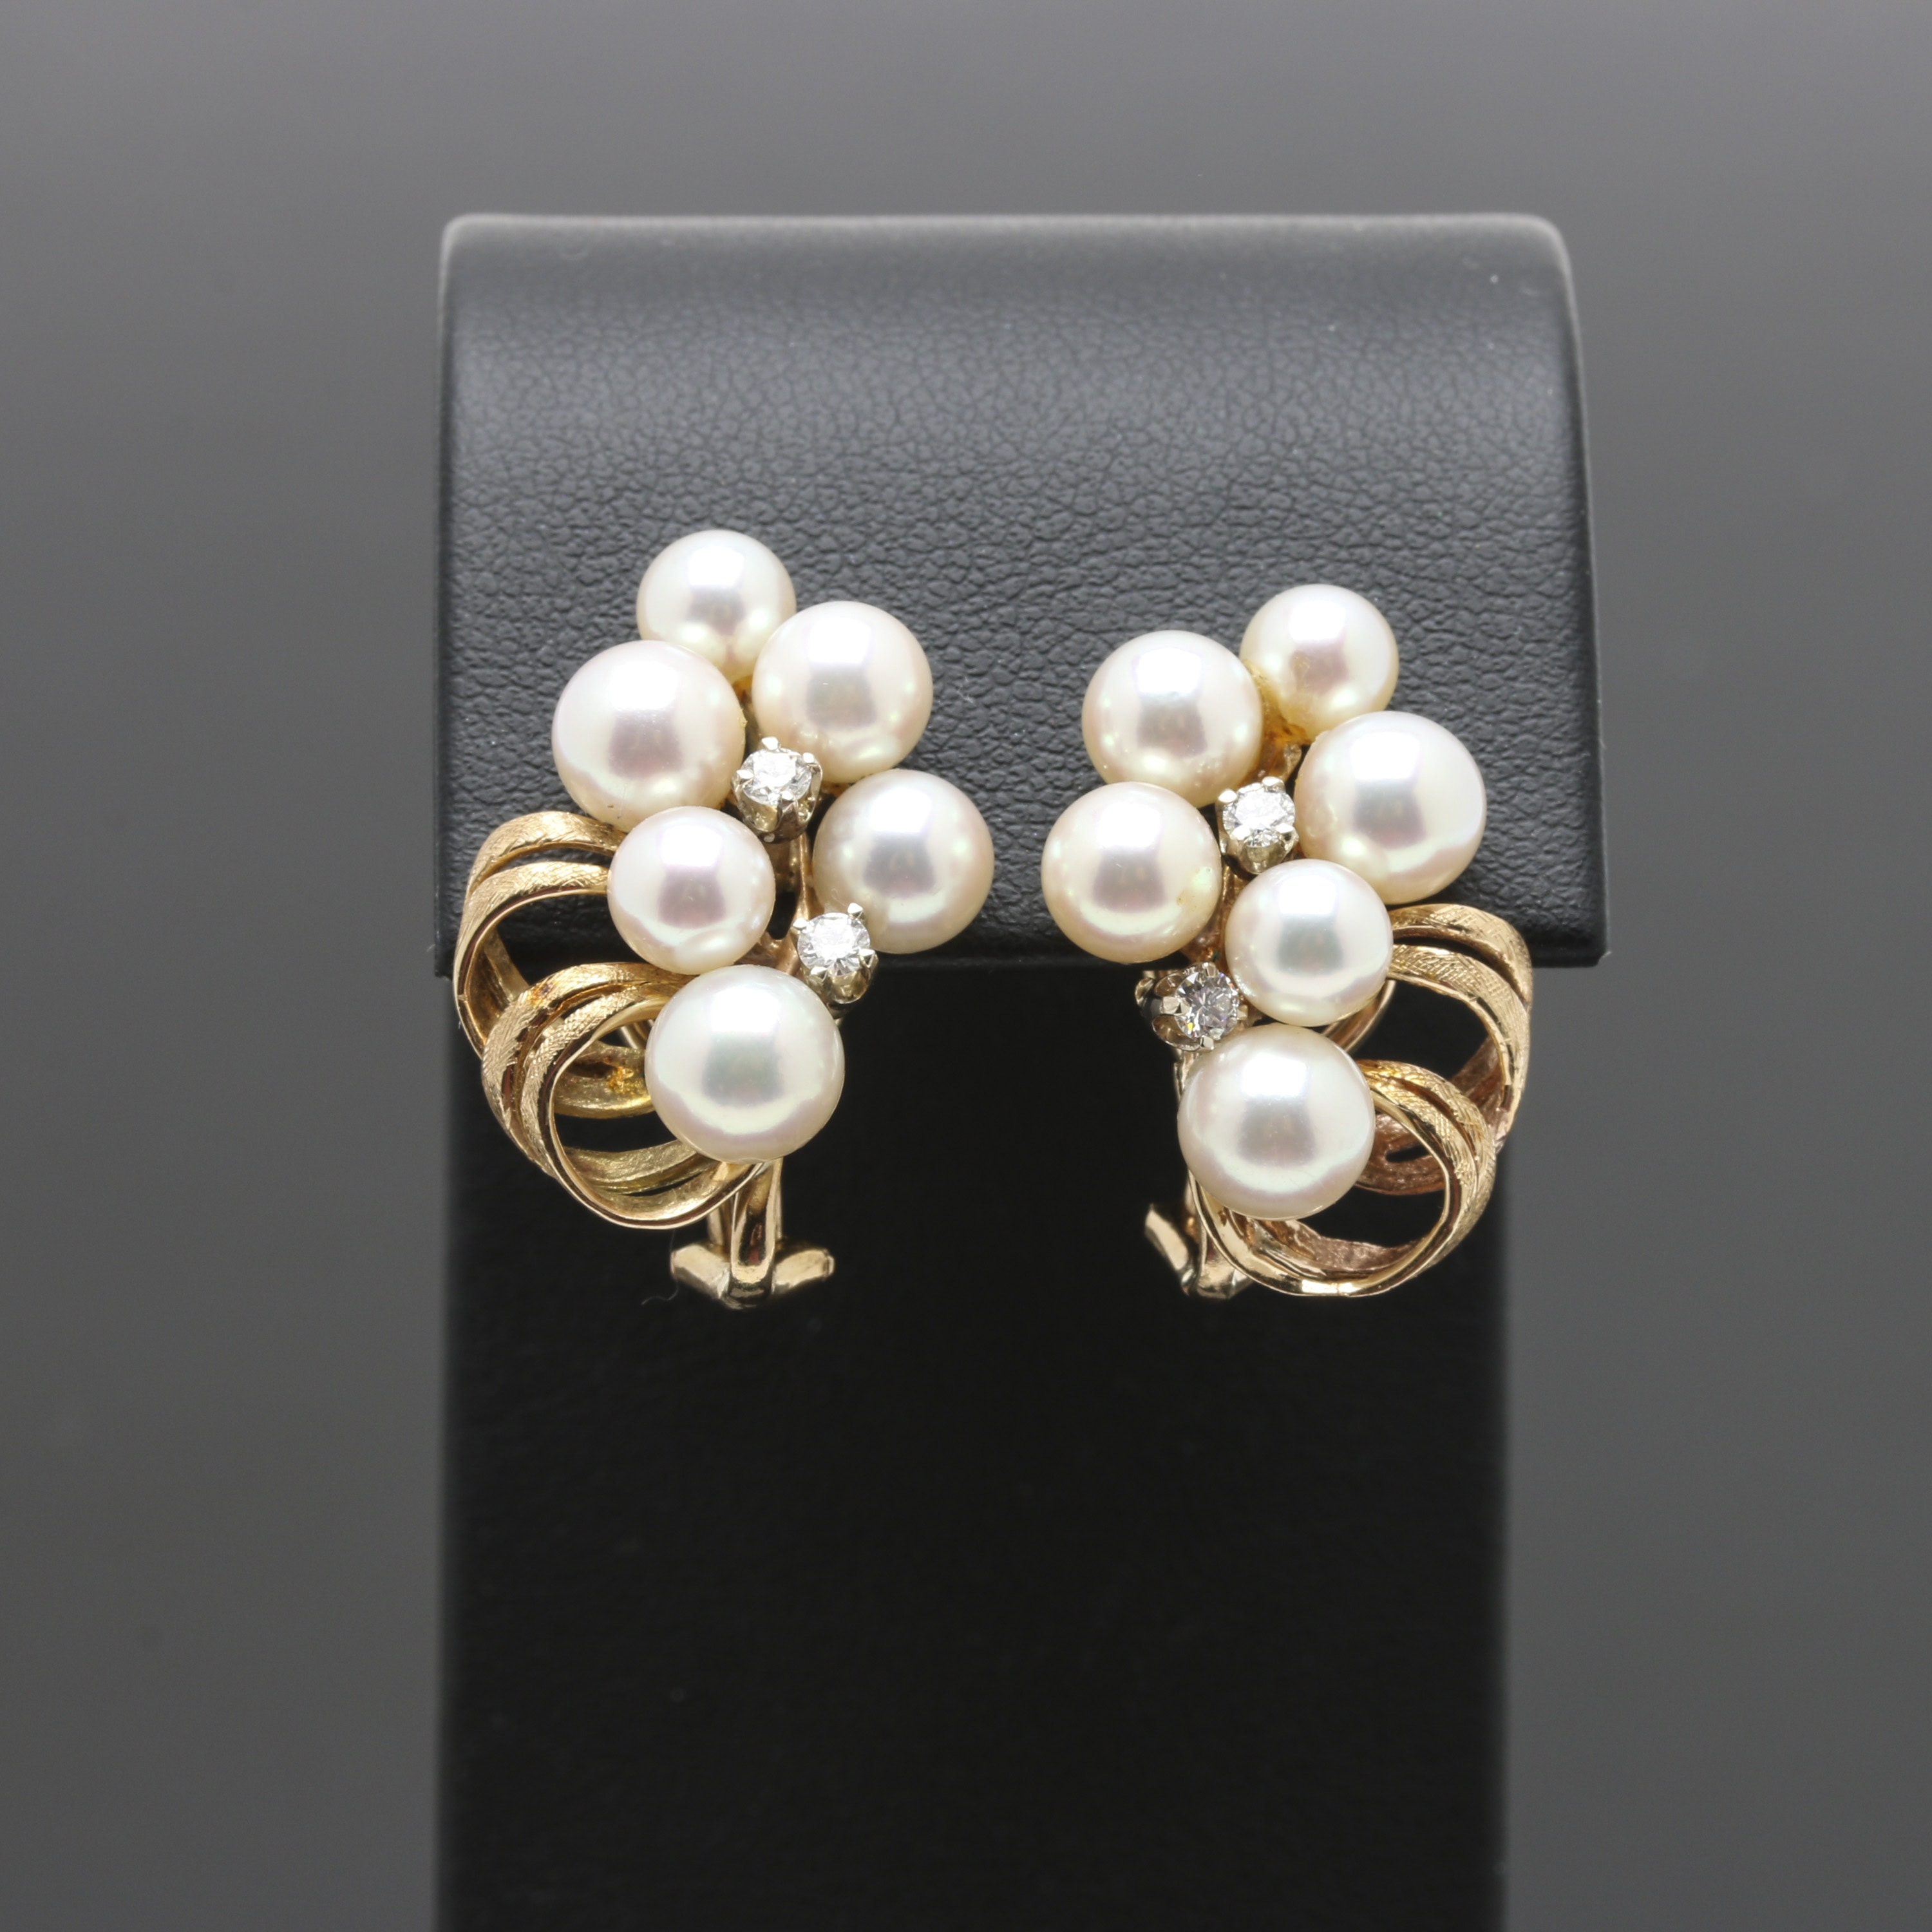 14K Yellow Gold Cultured Pearl Cluster Earrings With Diamond Accents